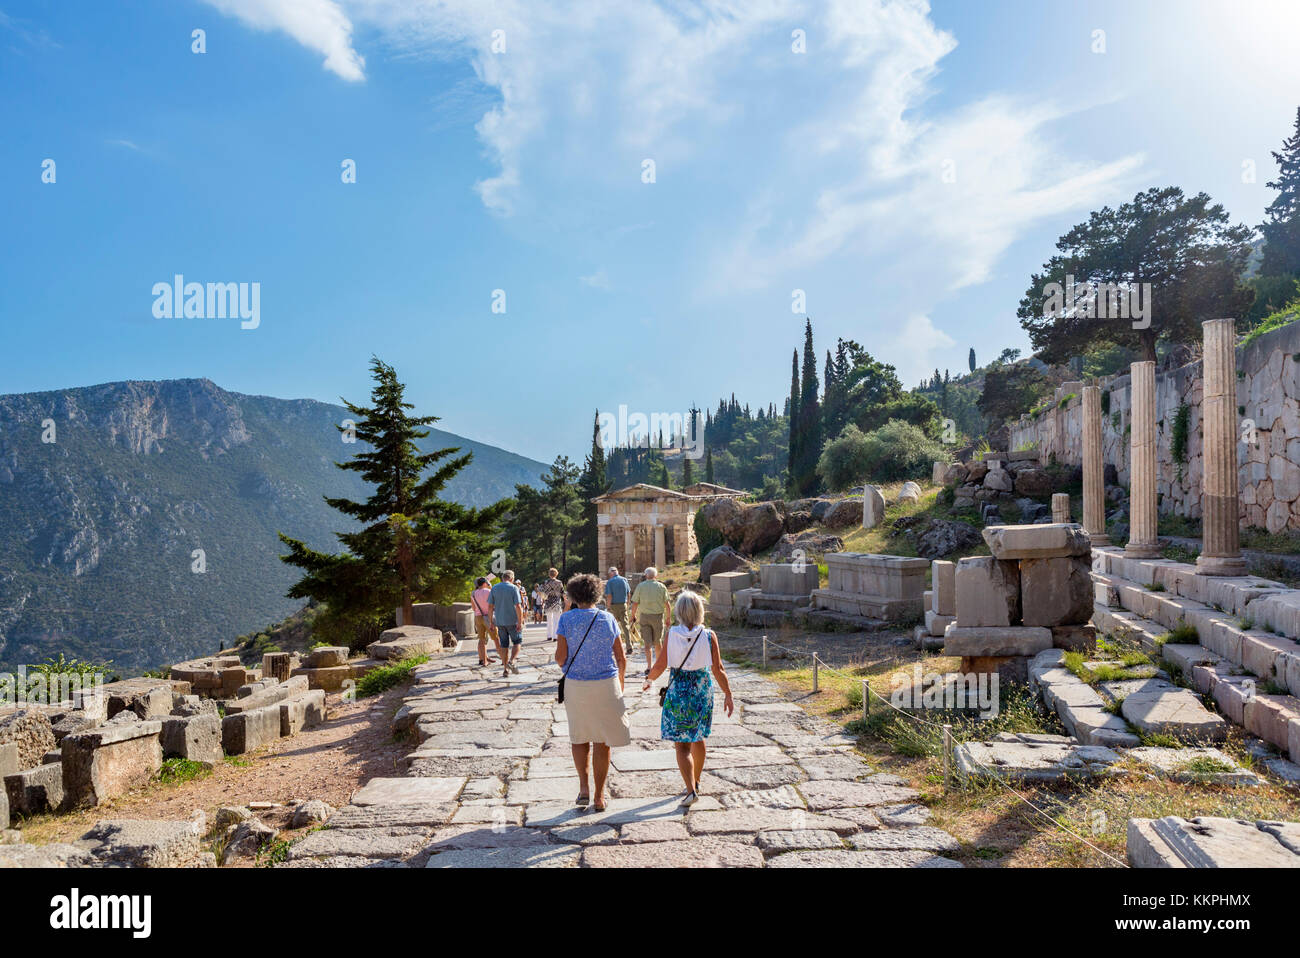 Tourists on a path through Ancient ruins at Delphi, Greece Stock Photo